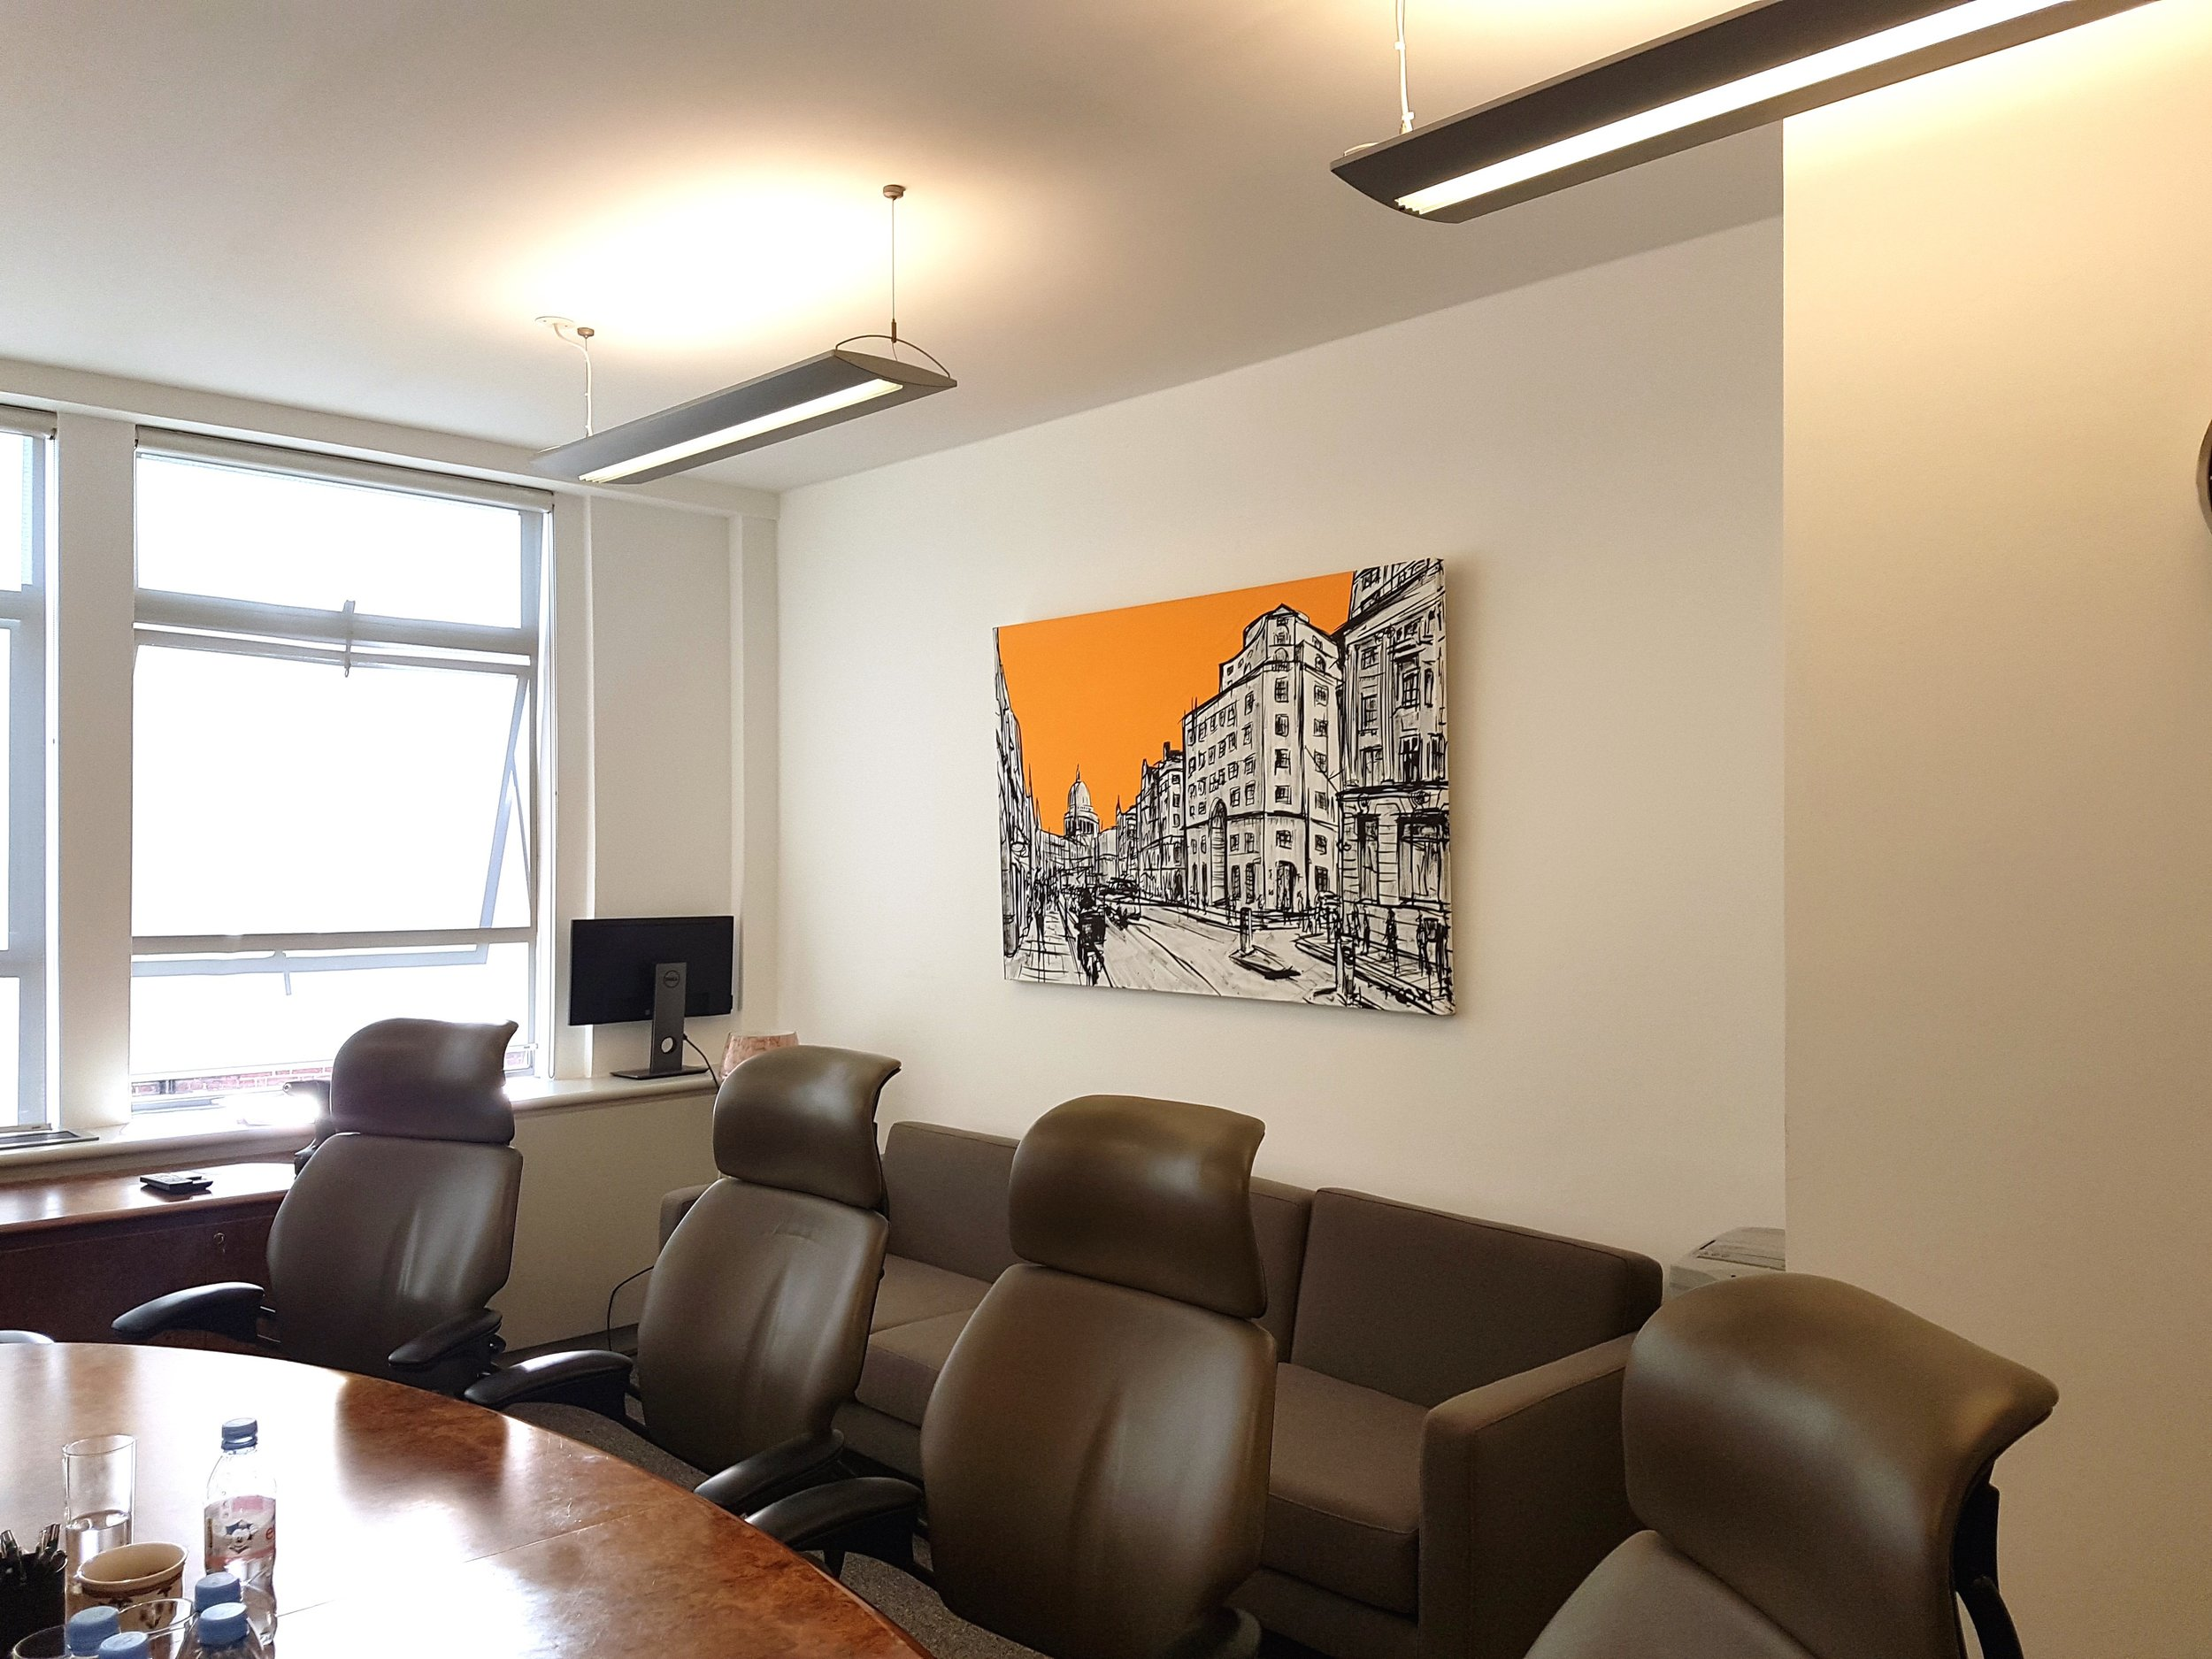 This was a corporate commission, it took two meetings to decide on the style and size of the painting.